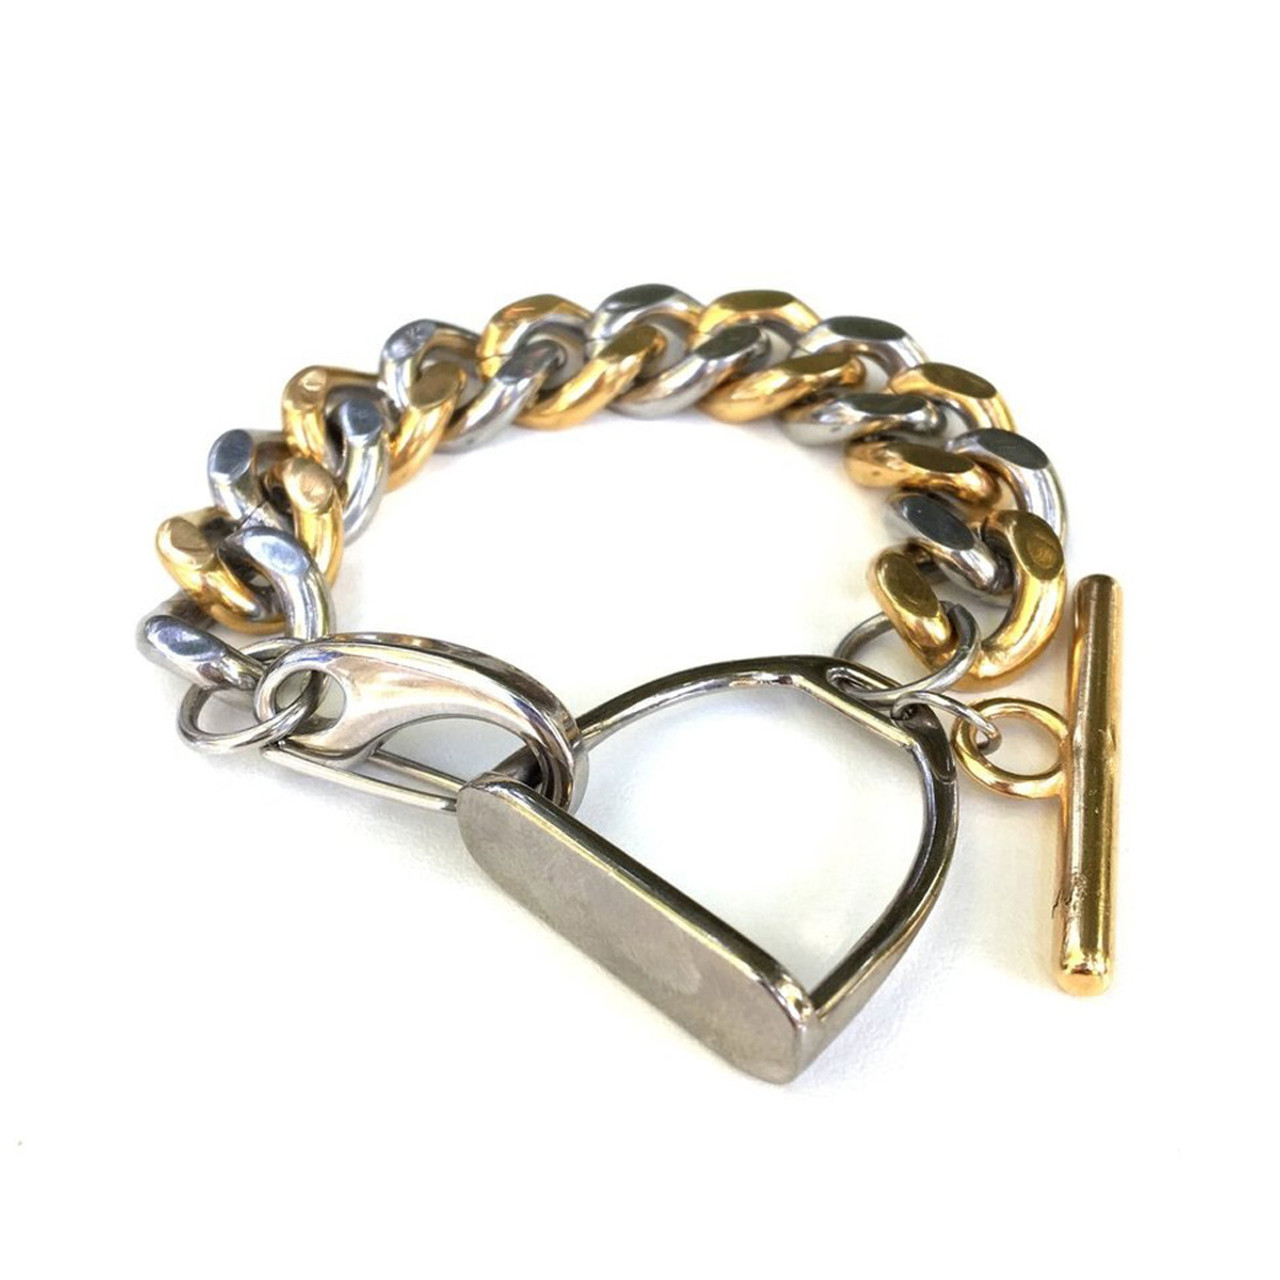 Stainless Steel Snaffle Bit Bracelet with Toggle Clasp